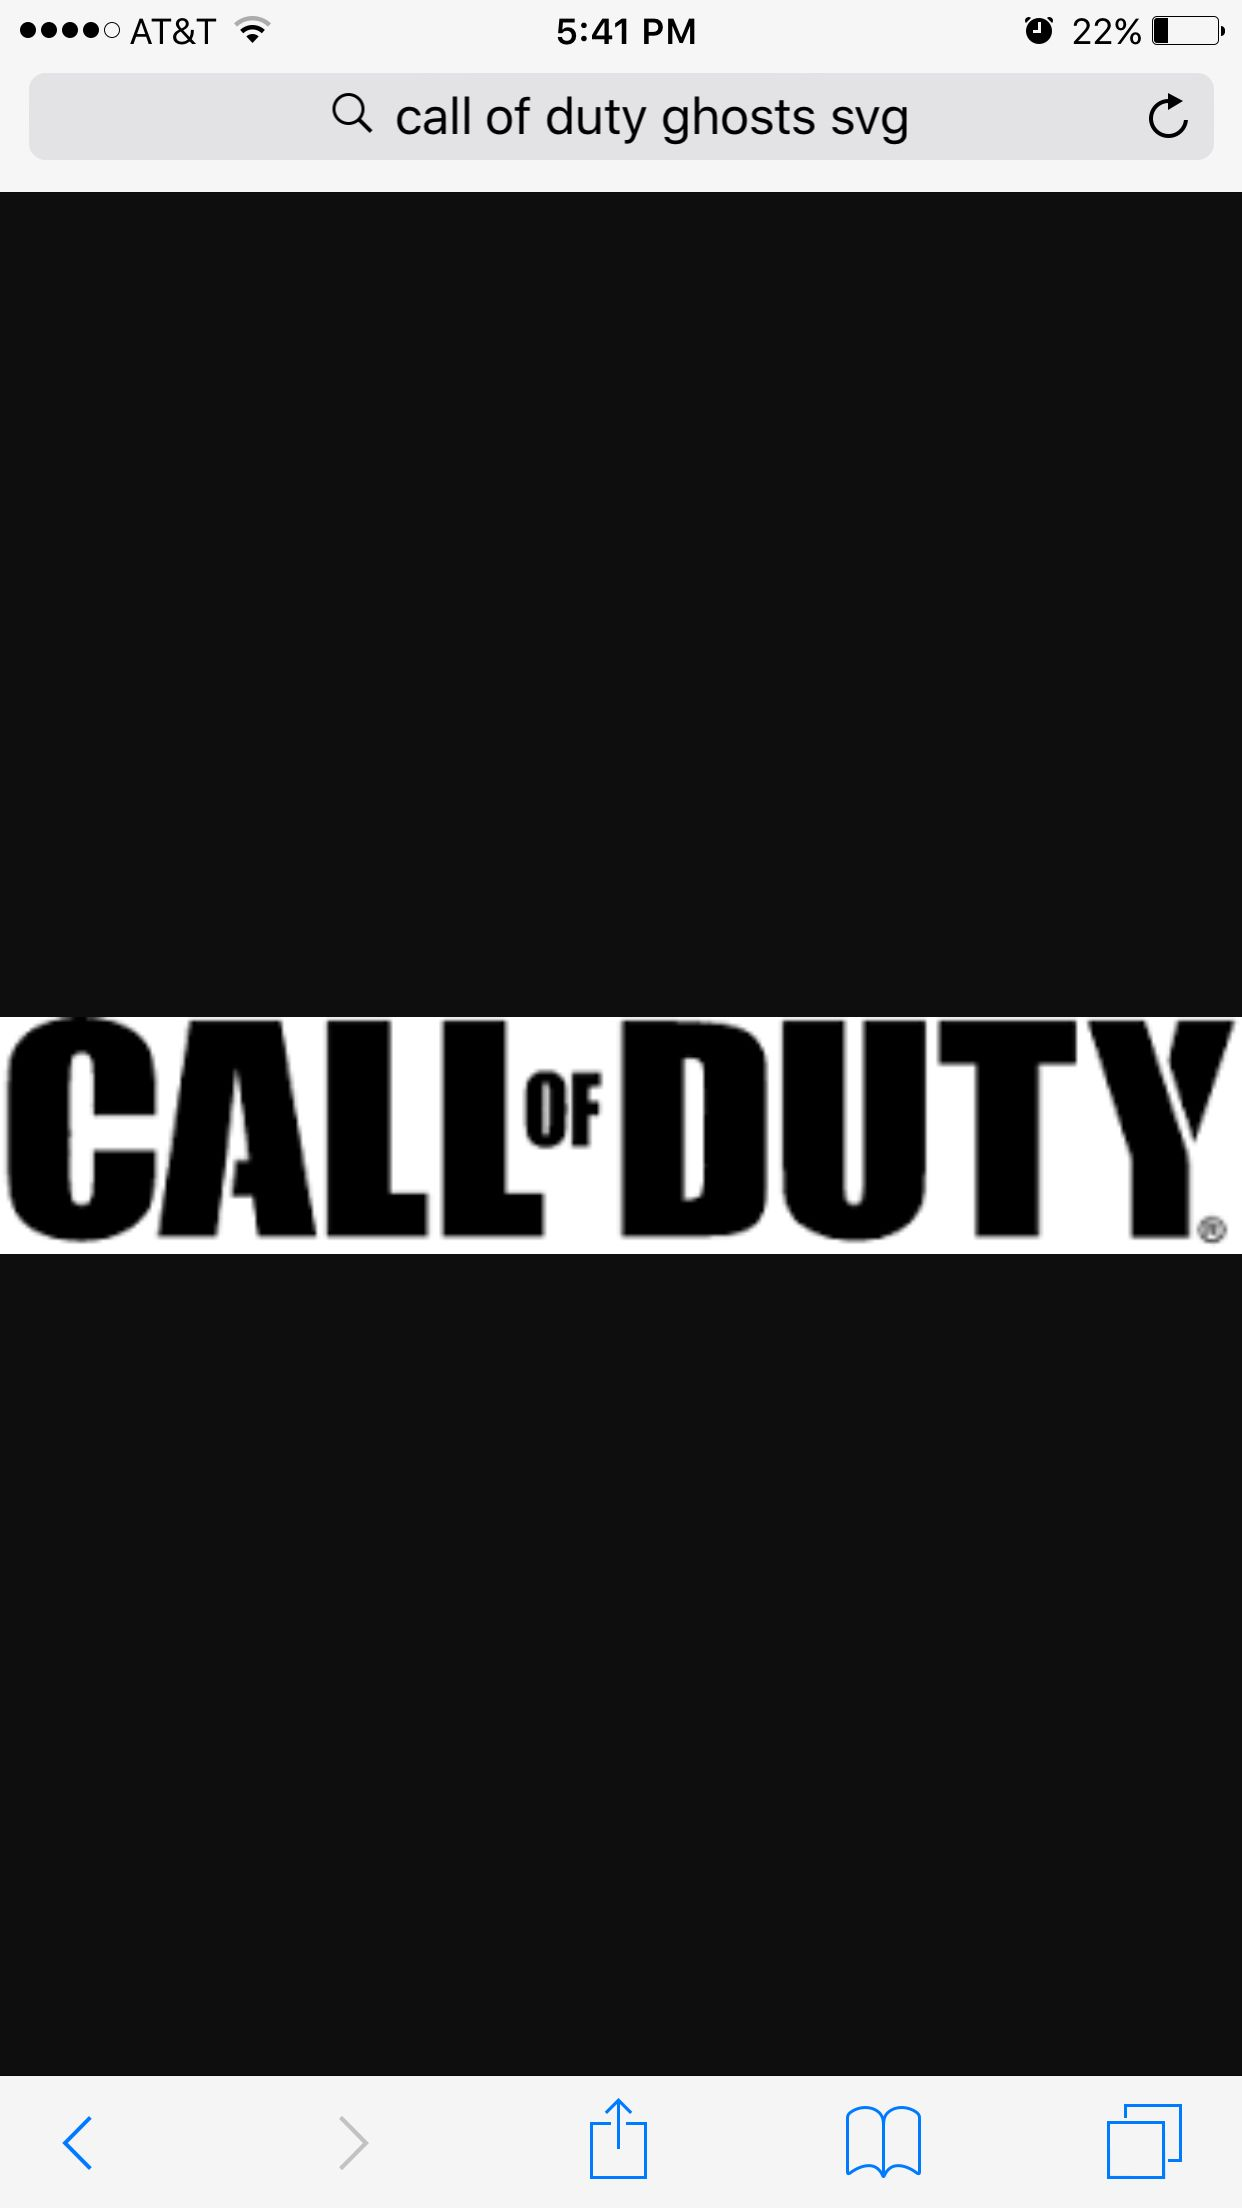 Pin by Coonassmom on *KK* Logos Call of duty ghosts